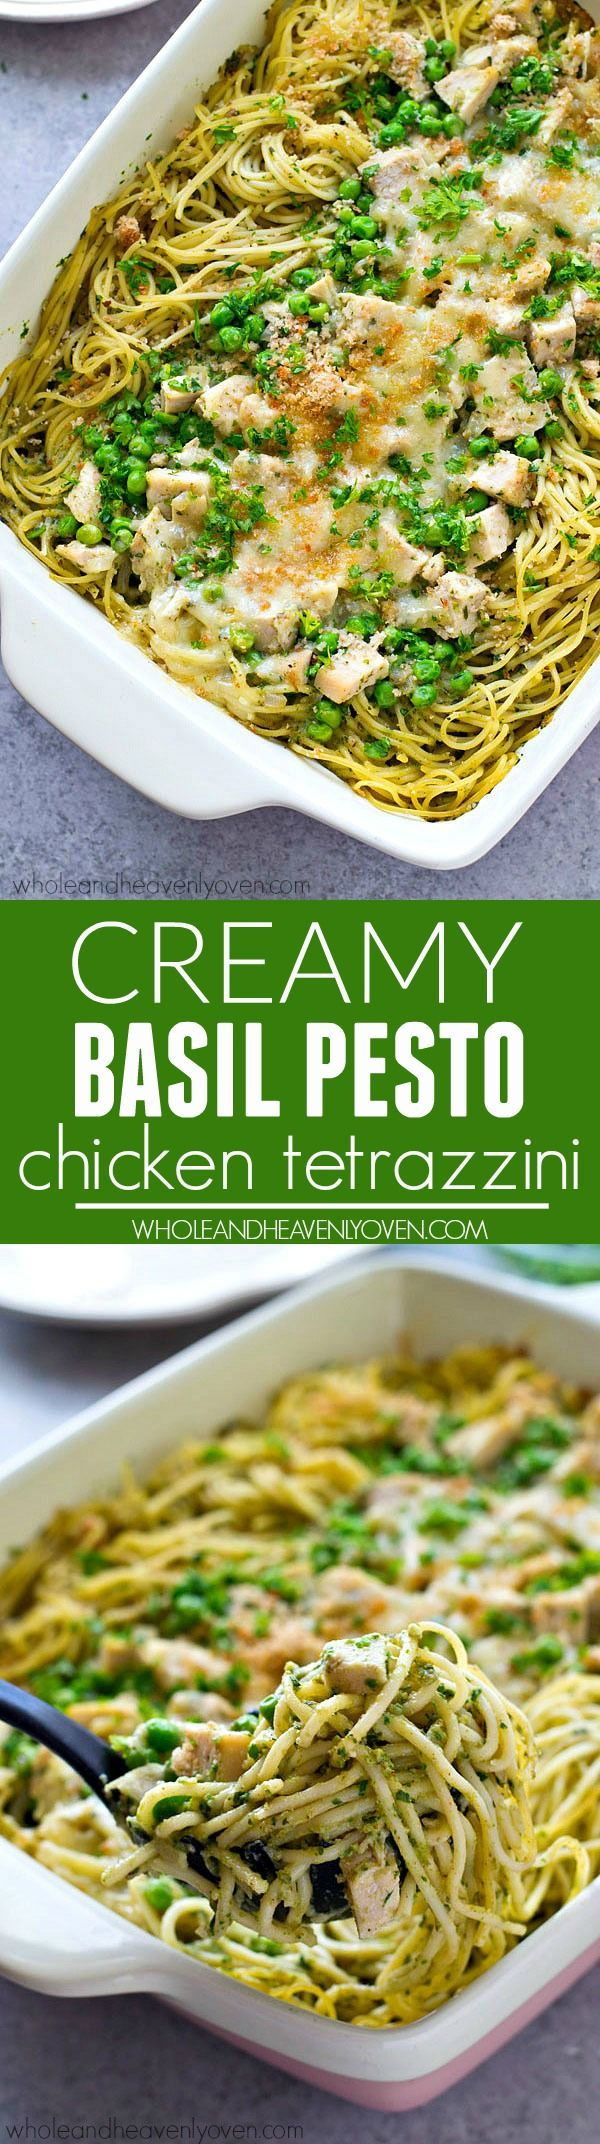 Classic pasta tetrazzini with a fun twist using basil pesto and chicken! This is the ultimately easy pan of comfort food that the entire family will adore.